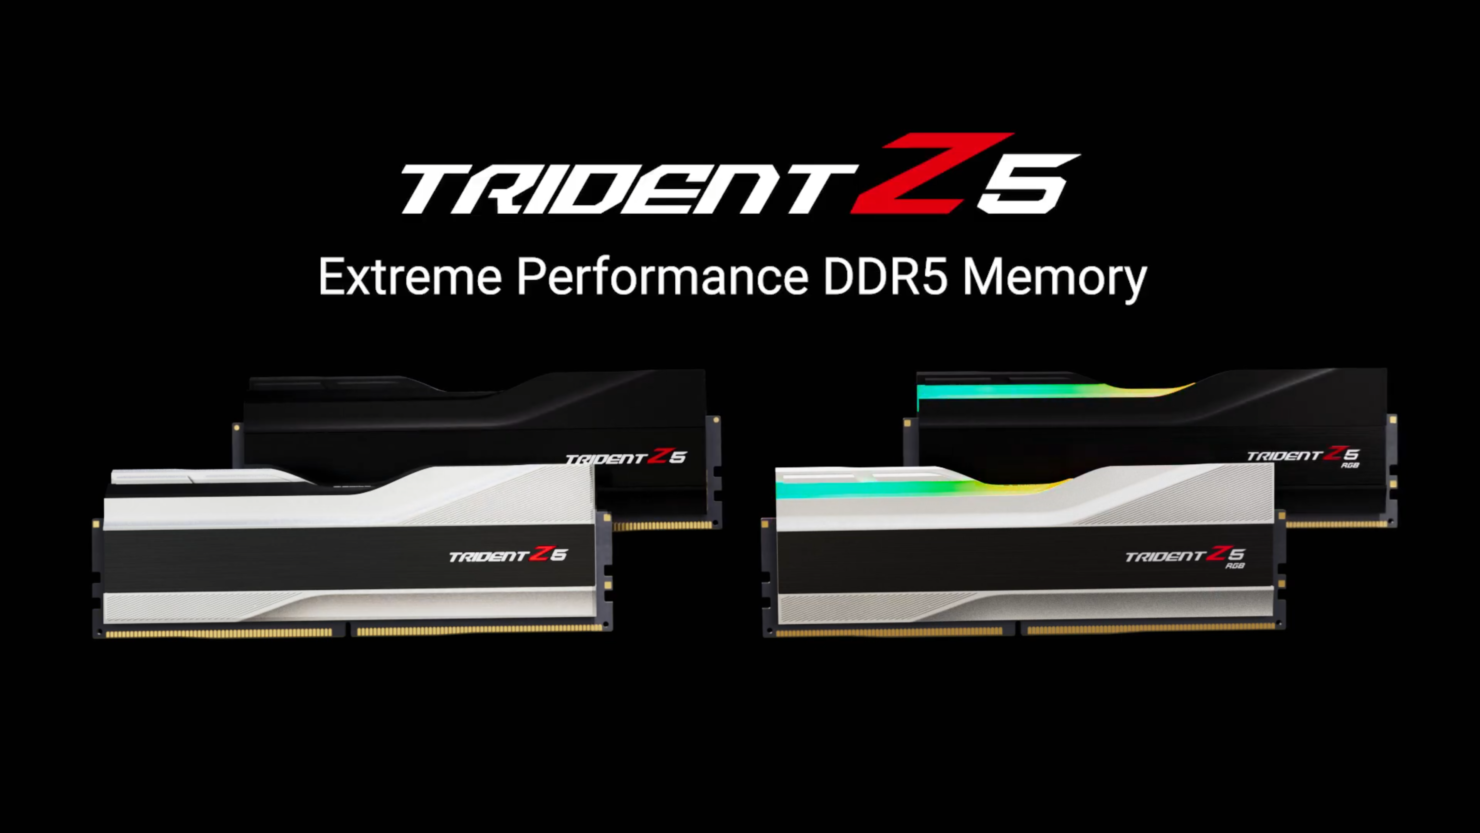 g.skill-unveils-its-flagship-trident-z5-rgb-ddr5-memory-series-–-up-to-ddr5-6400-cl36-using-samsung-dram,-new-dual-texture-heatspreader